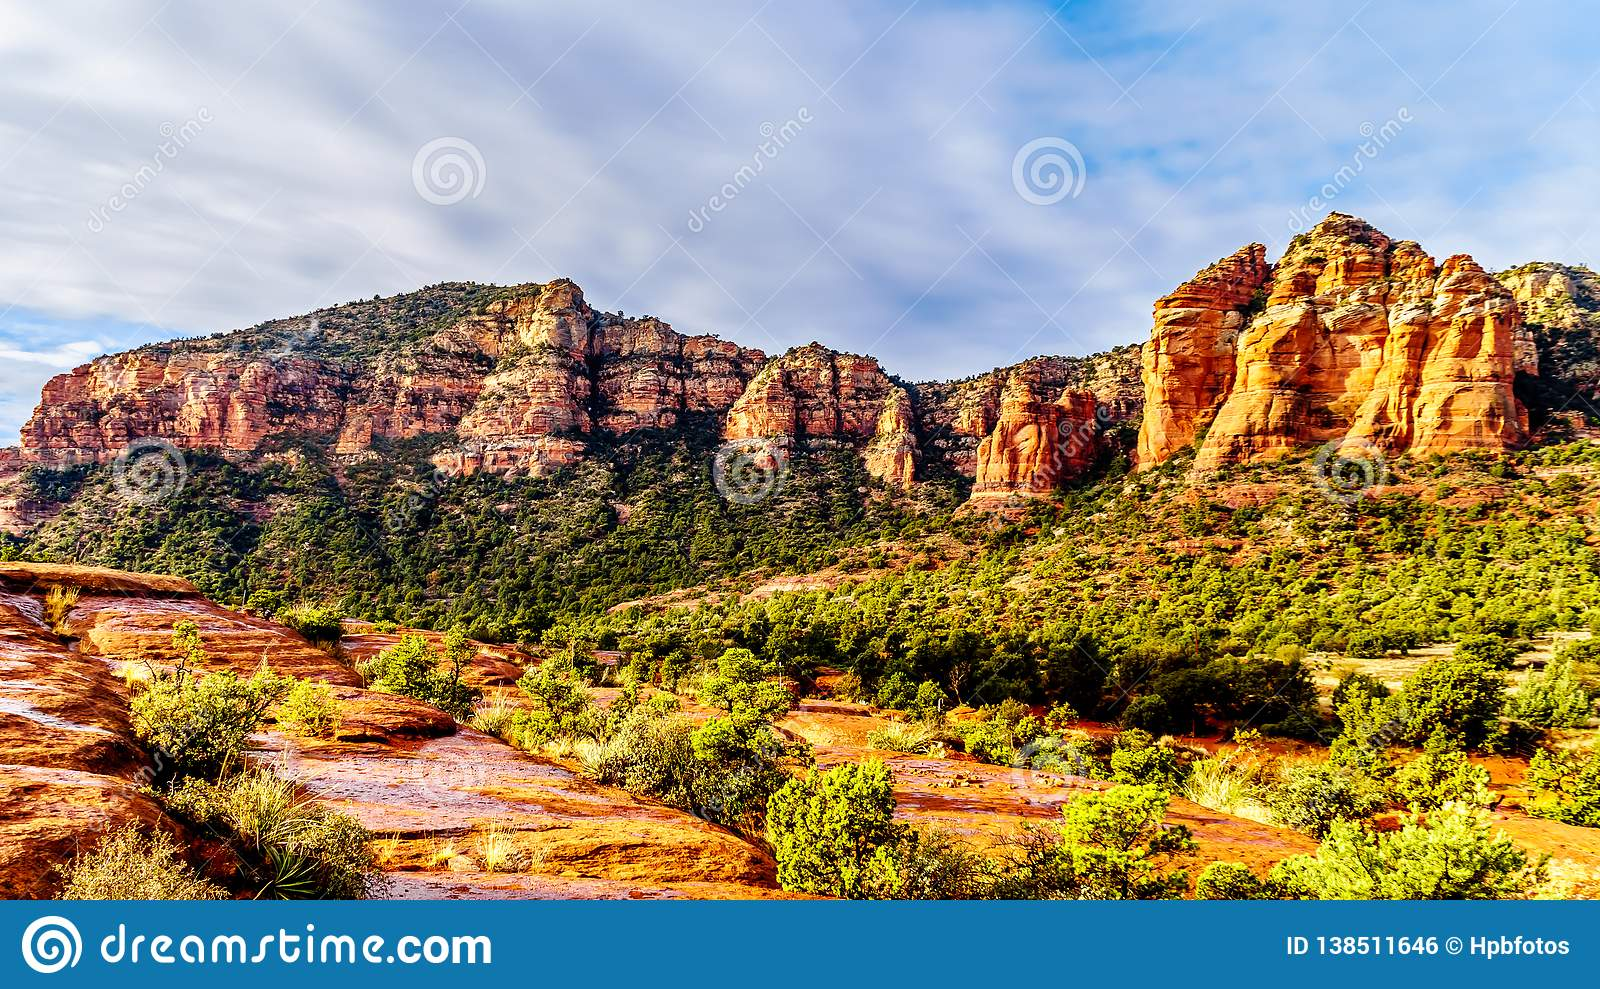 Colorful Cathedral Rock and other red rock mountains between the Village of Oak Creek and Sedona